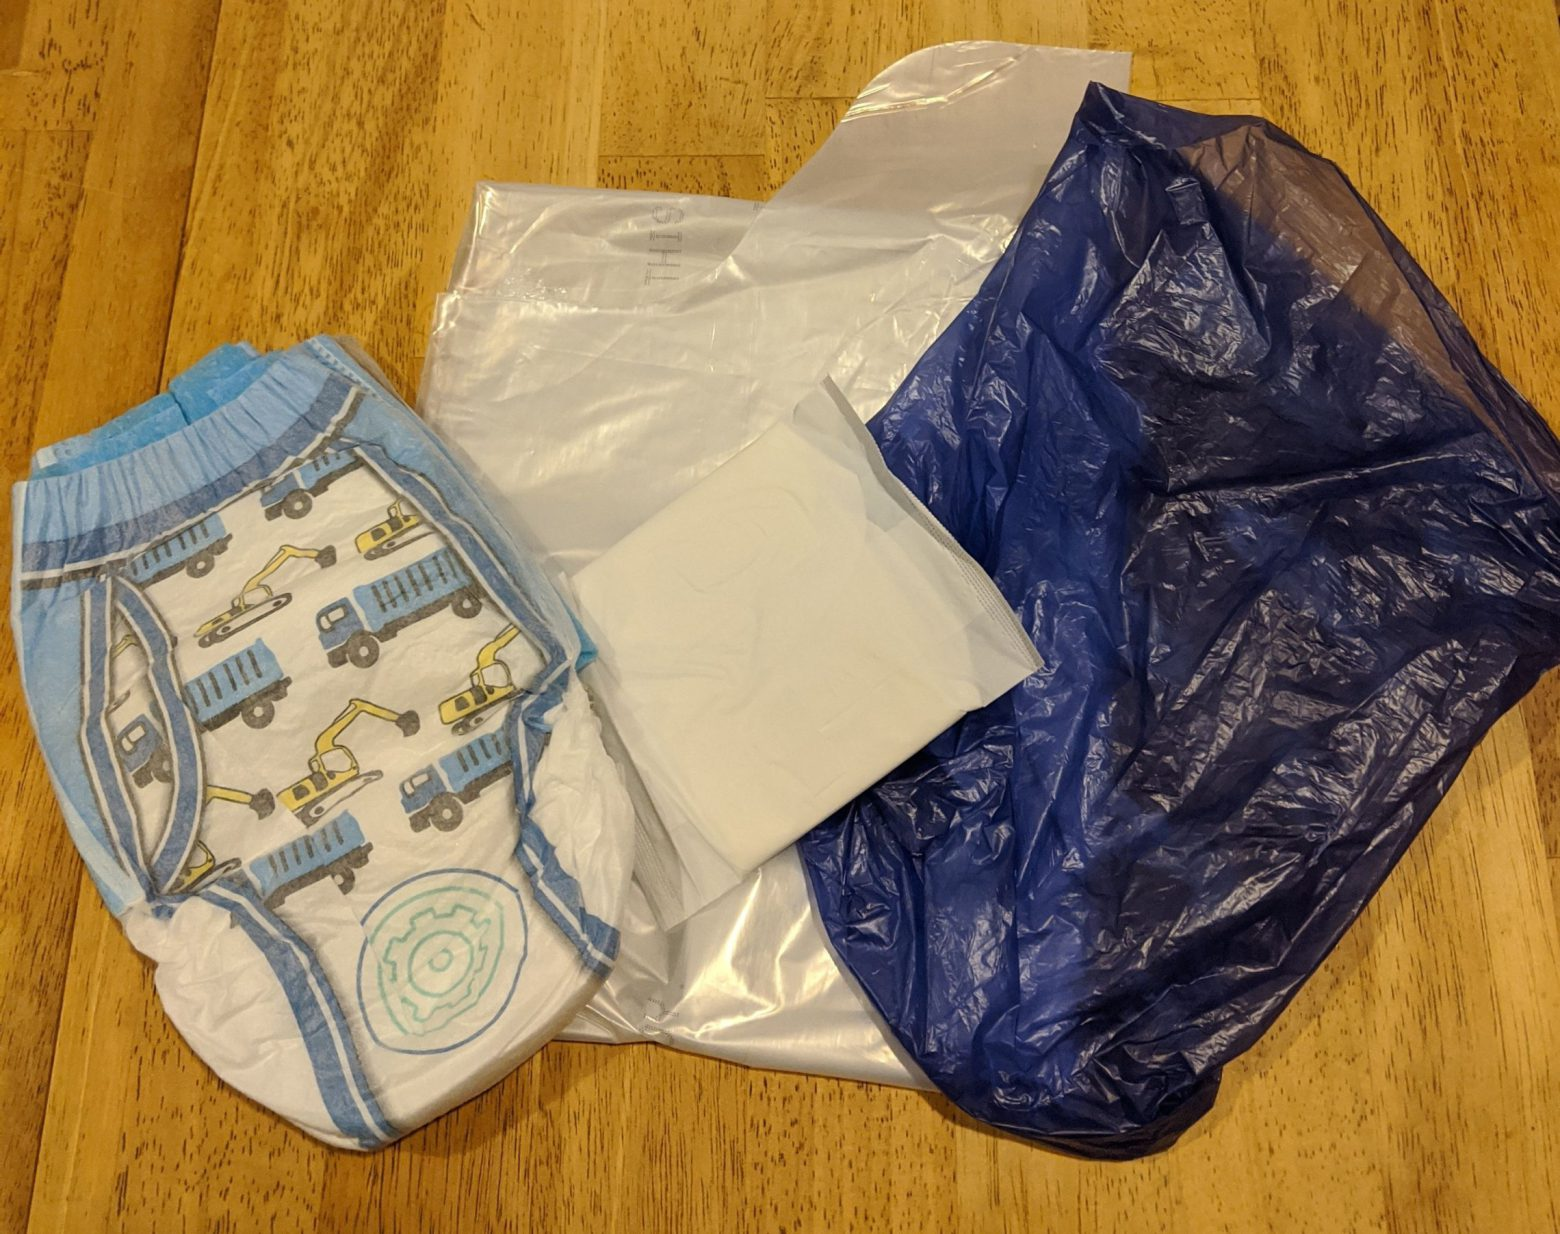 Best Intentions: Pet waste bags, trash bags, menstrual products, diapers